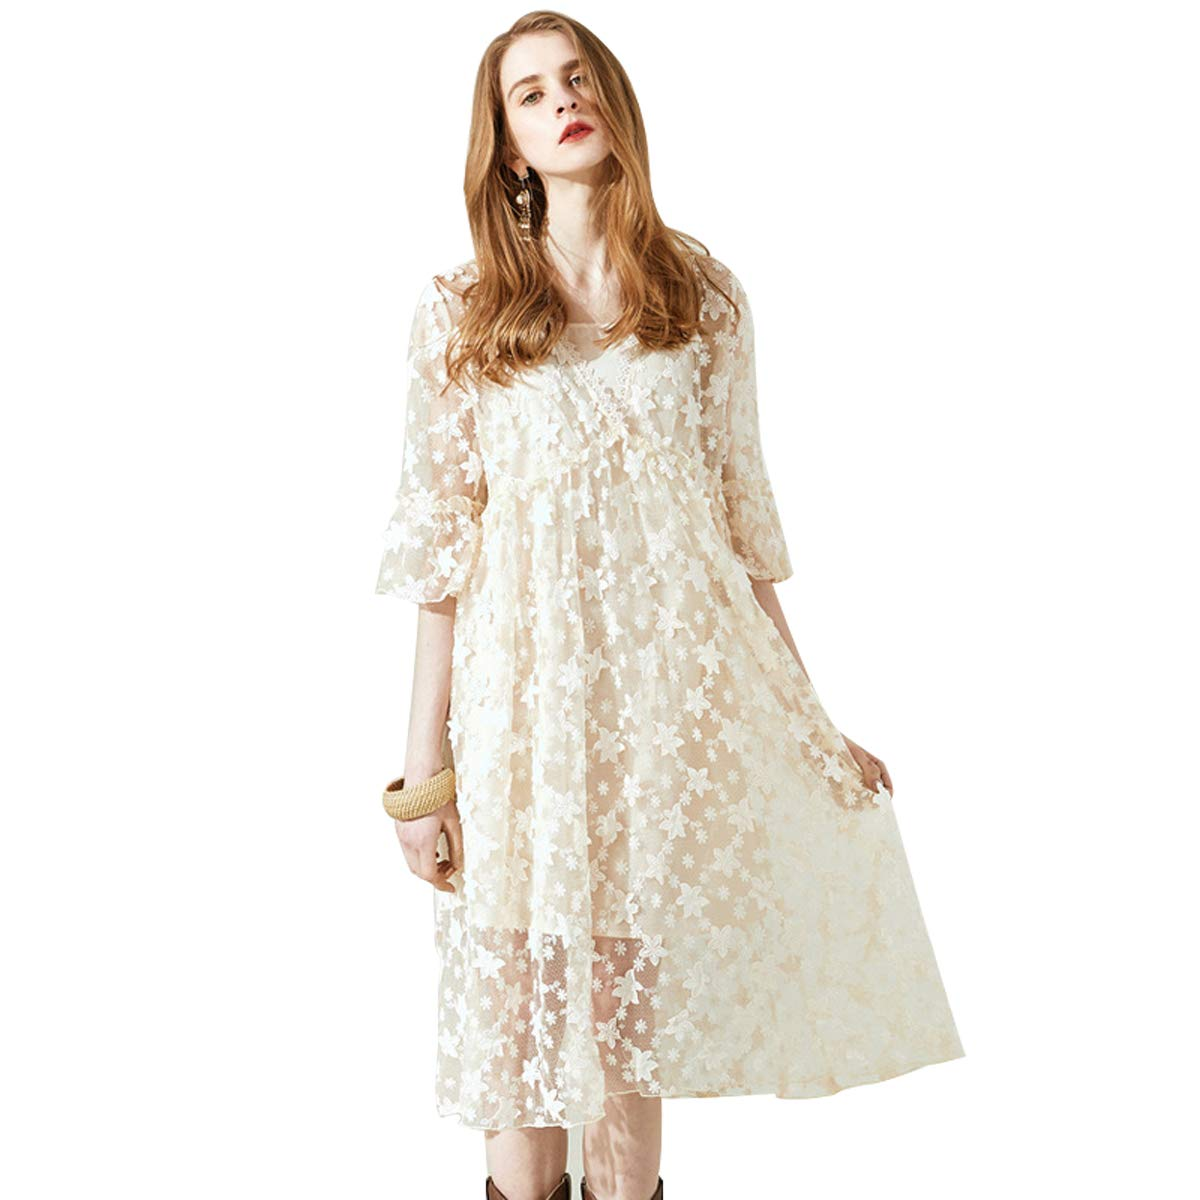 Creamywhite VNeck Dress, Spring and Summer New Women's Long Dress